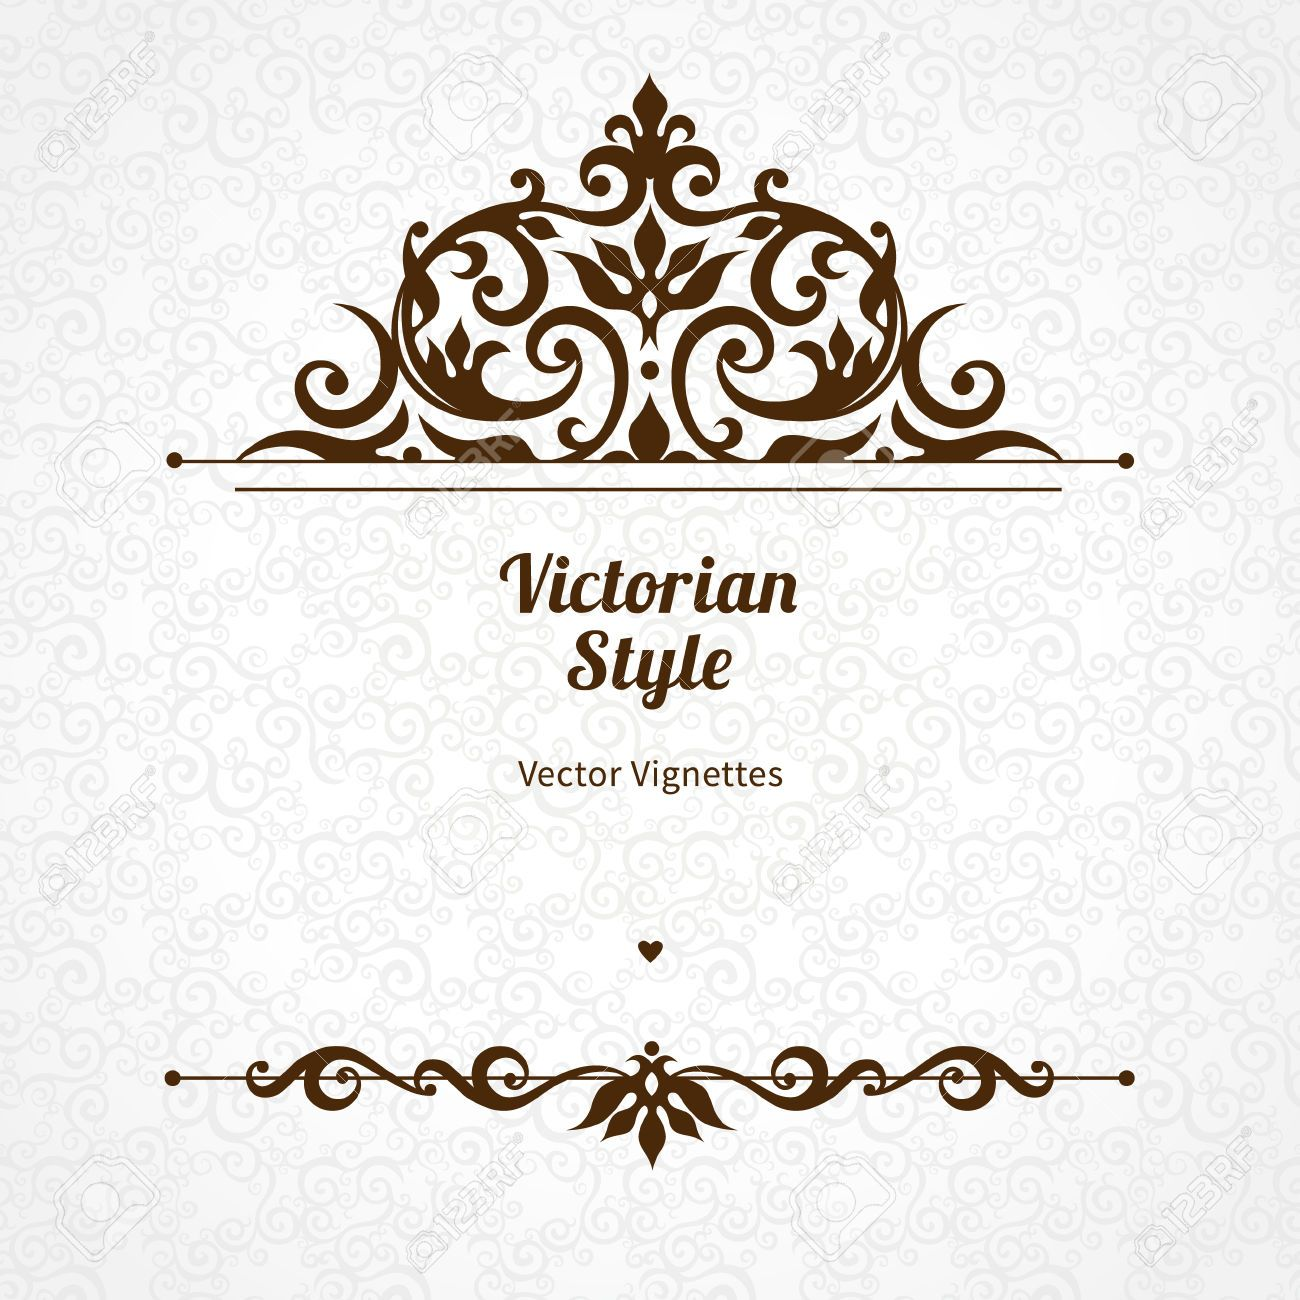 Vector floral vignette in victorian style on scroll work background